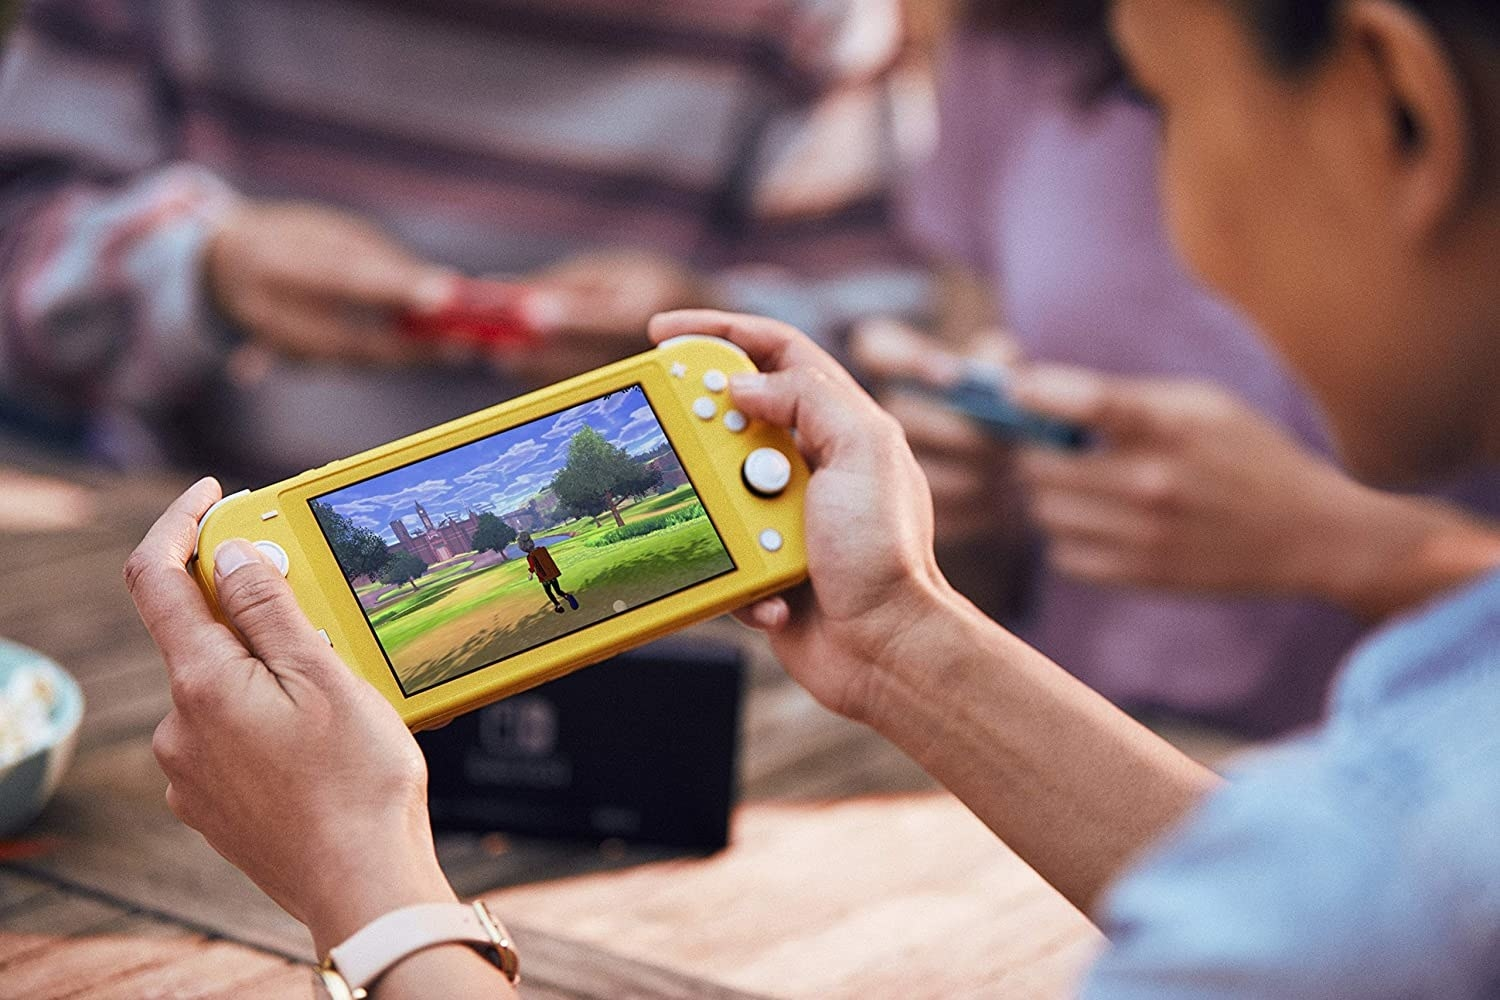 Man holding yellow Nintendo Switch Lite